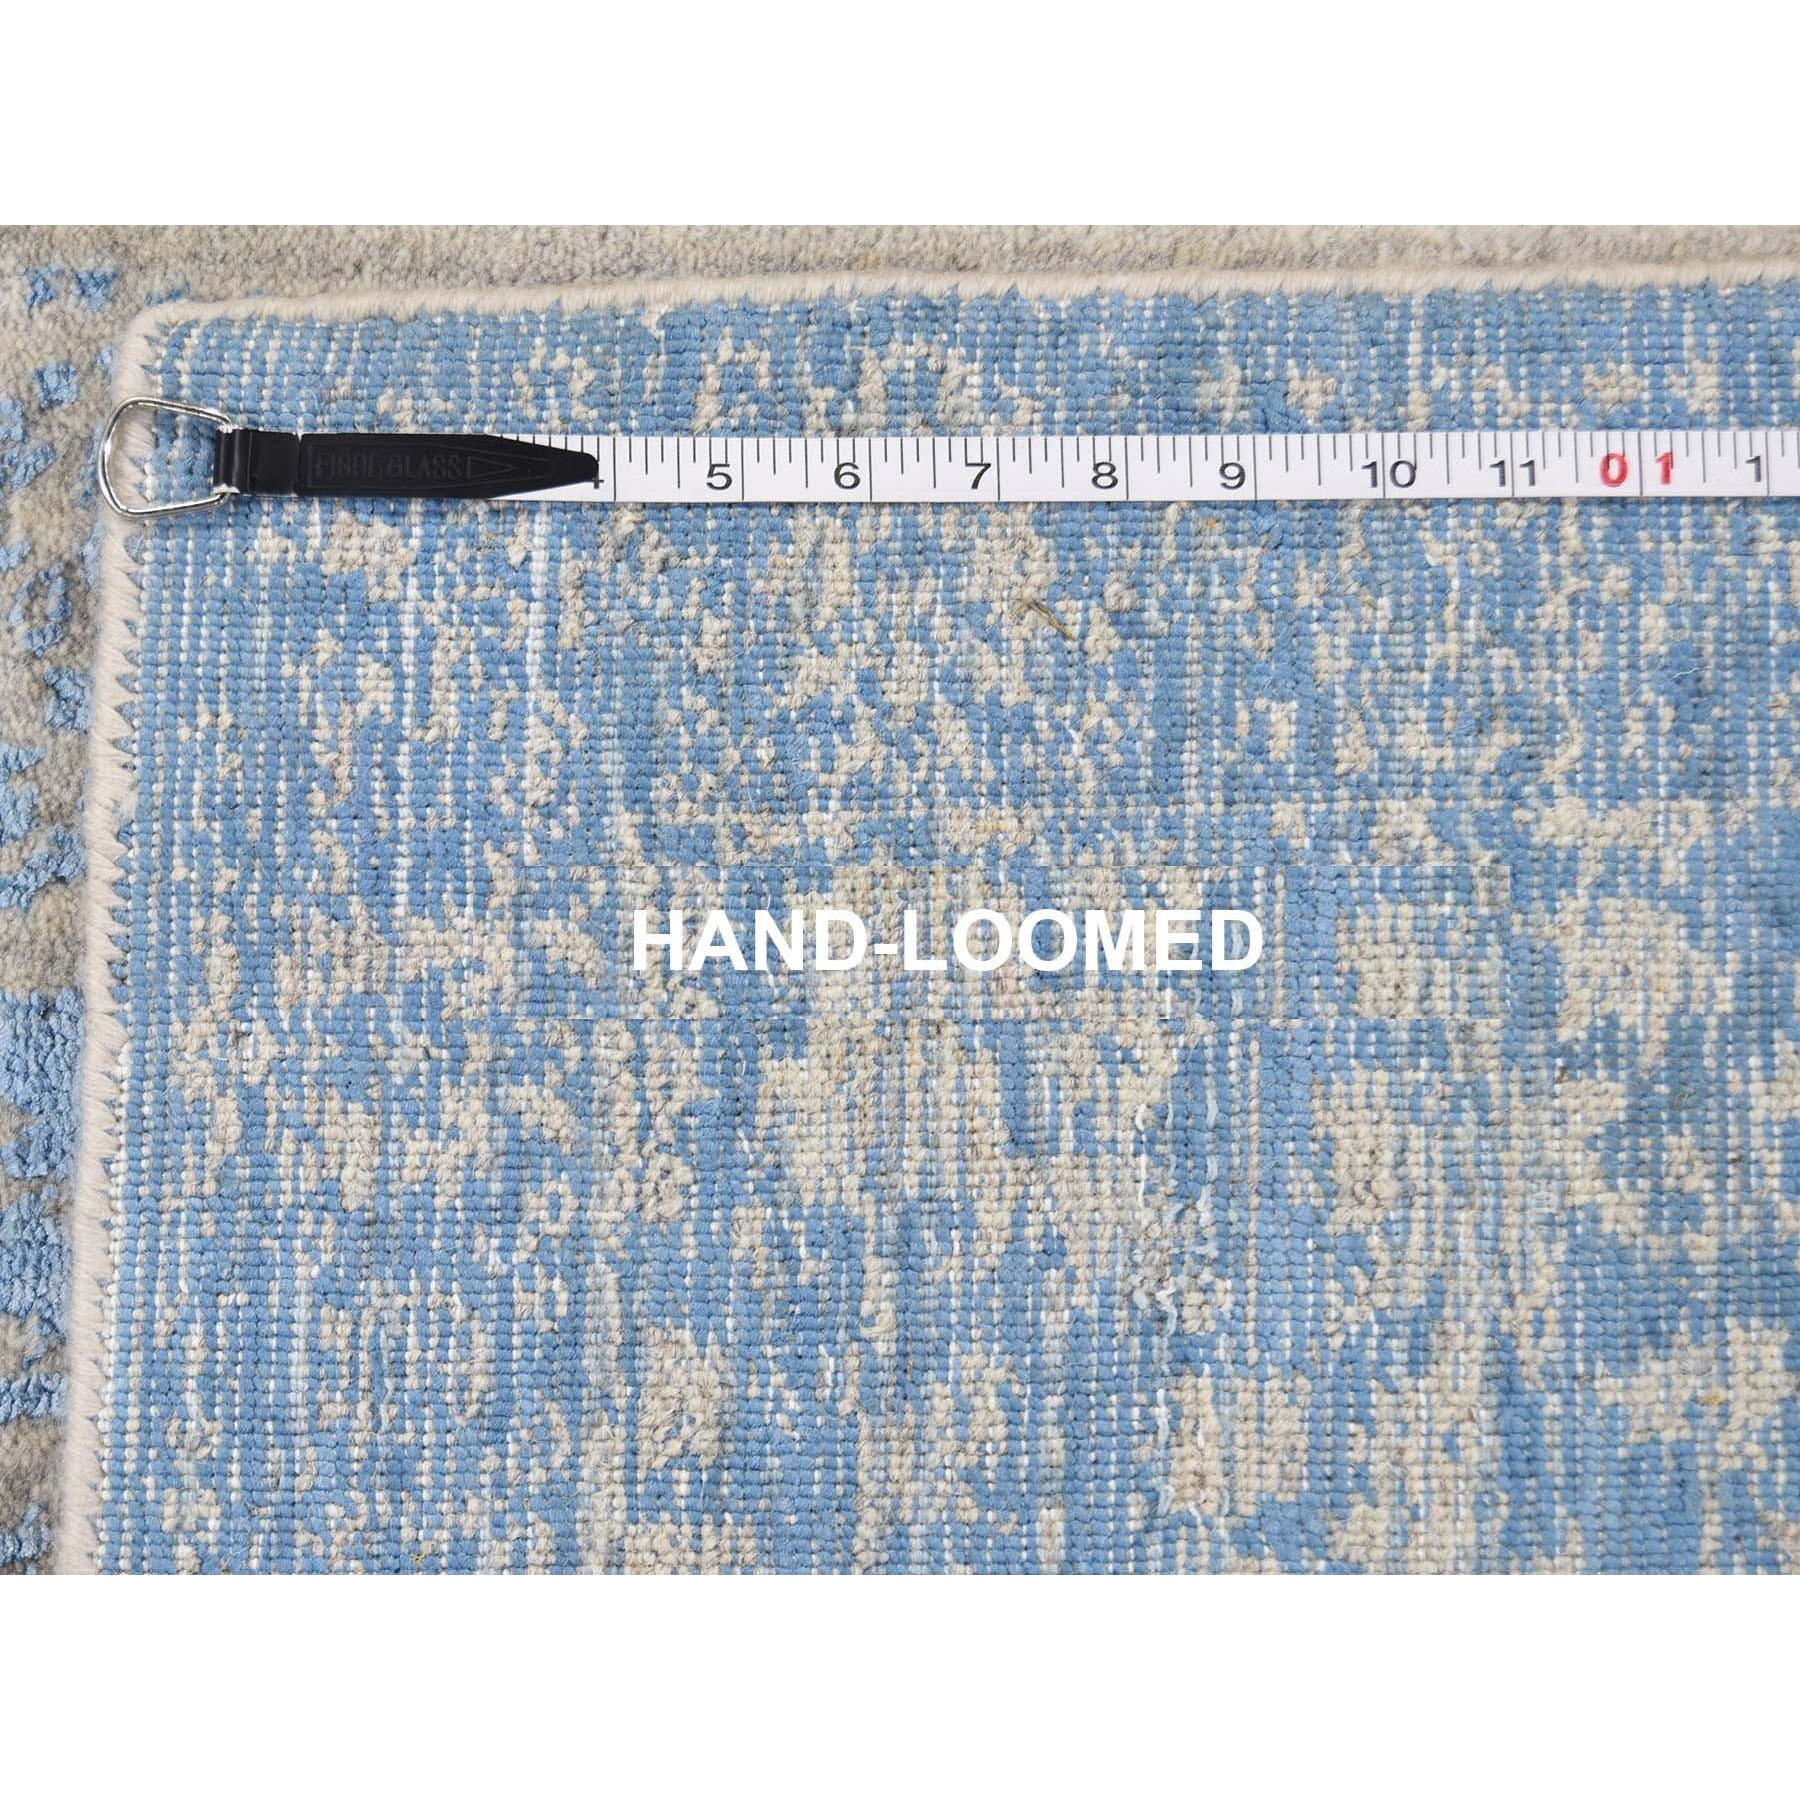 "2'5""x8' Jacquard Hand Loomed Blue Broken Cypress Tree Design Silken Thick And Plush Runner Oriental Rug"